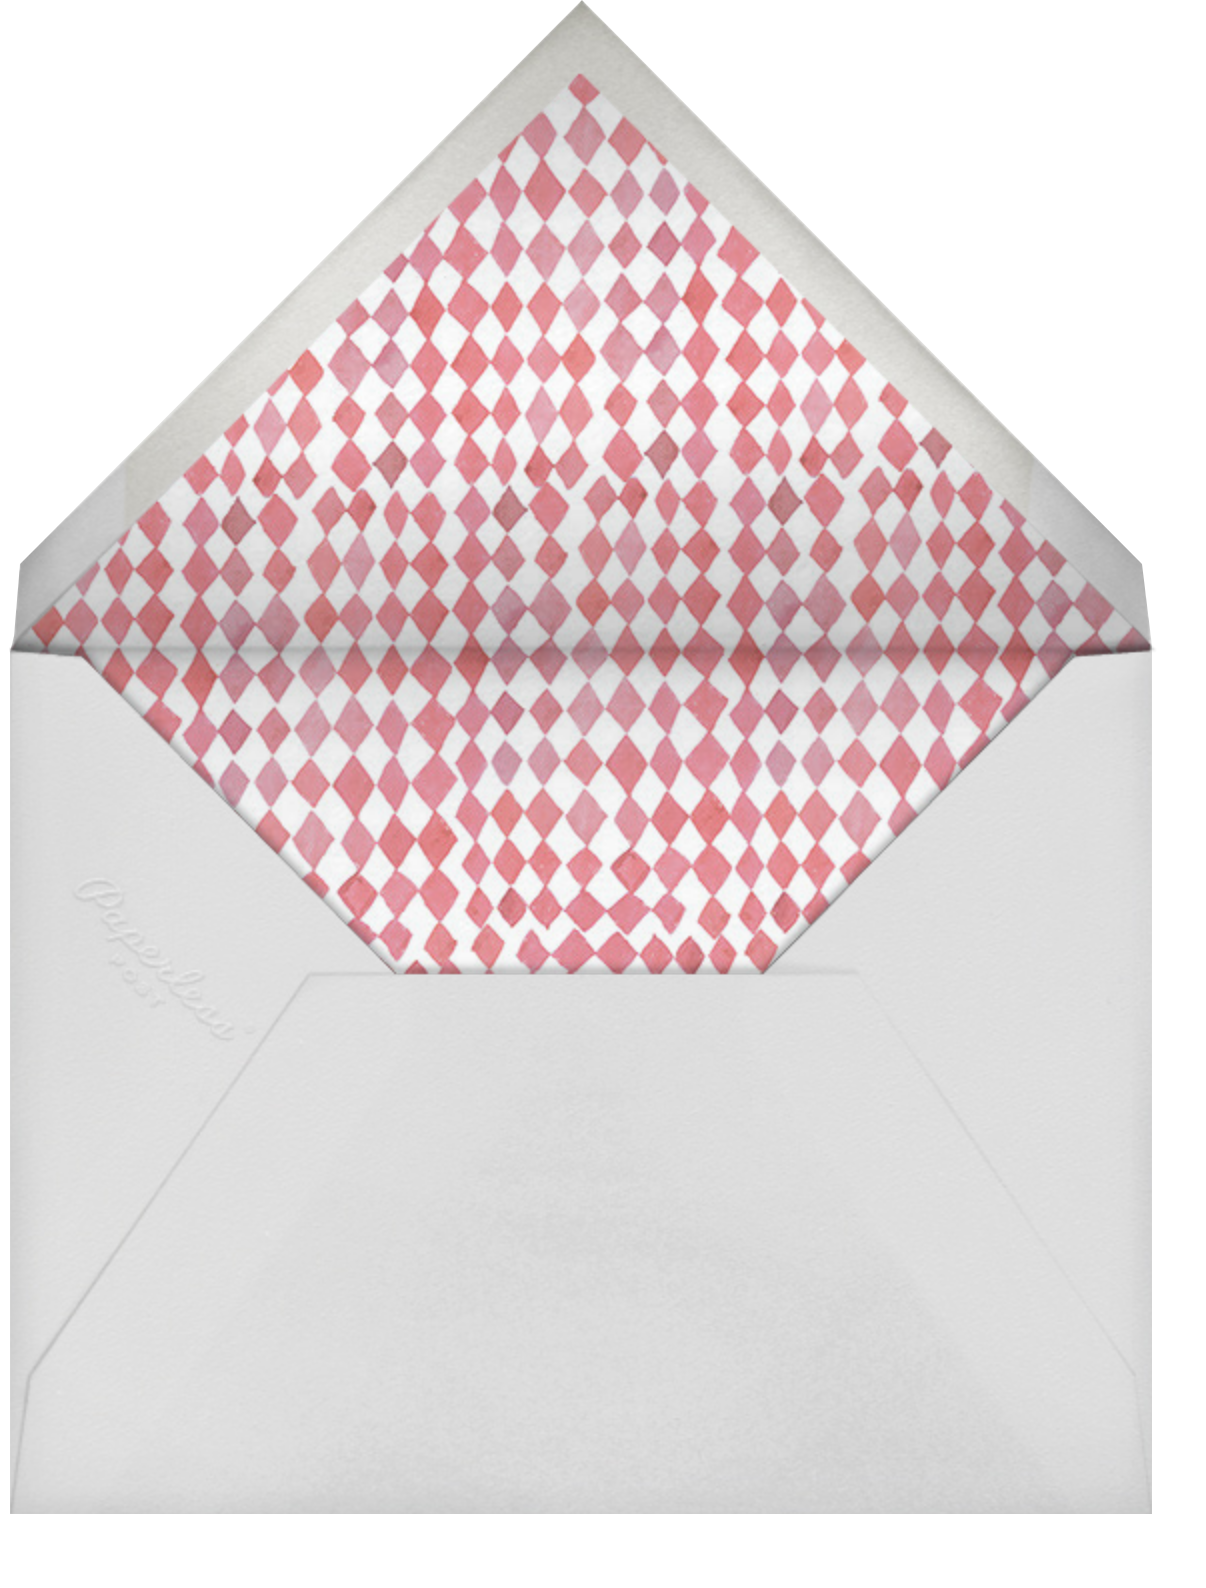 Three Tiers - Happy Menocal - Mother's Day - envelope back